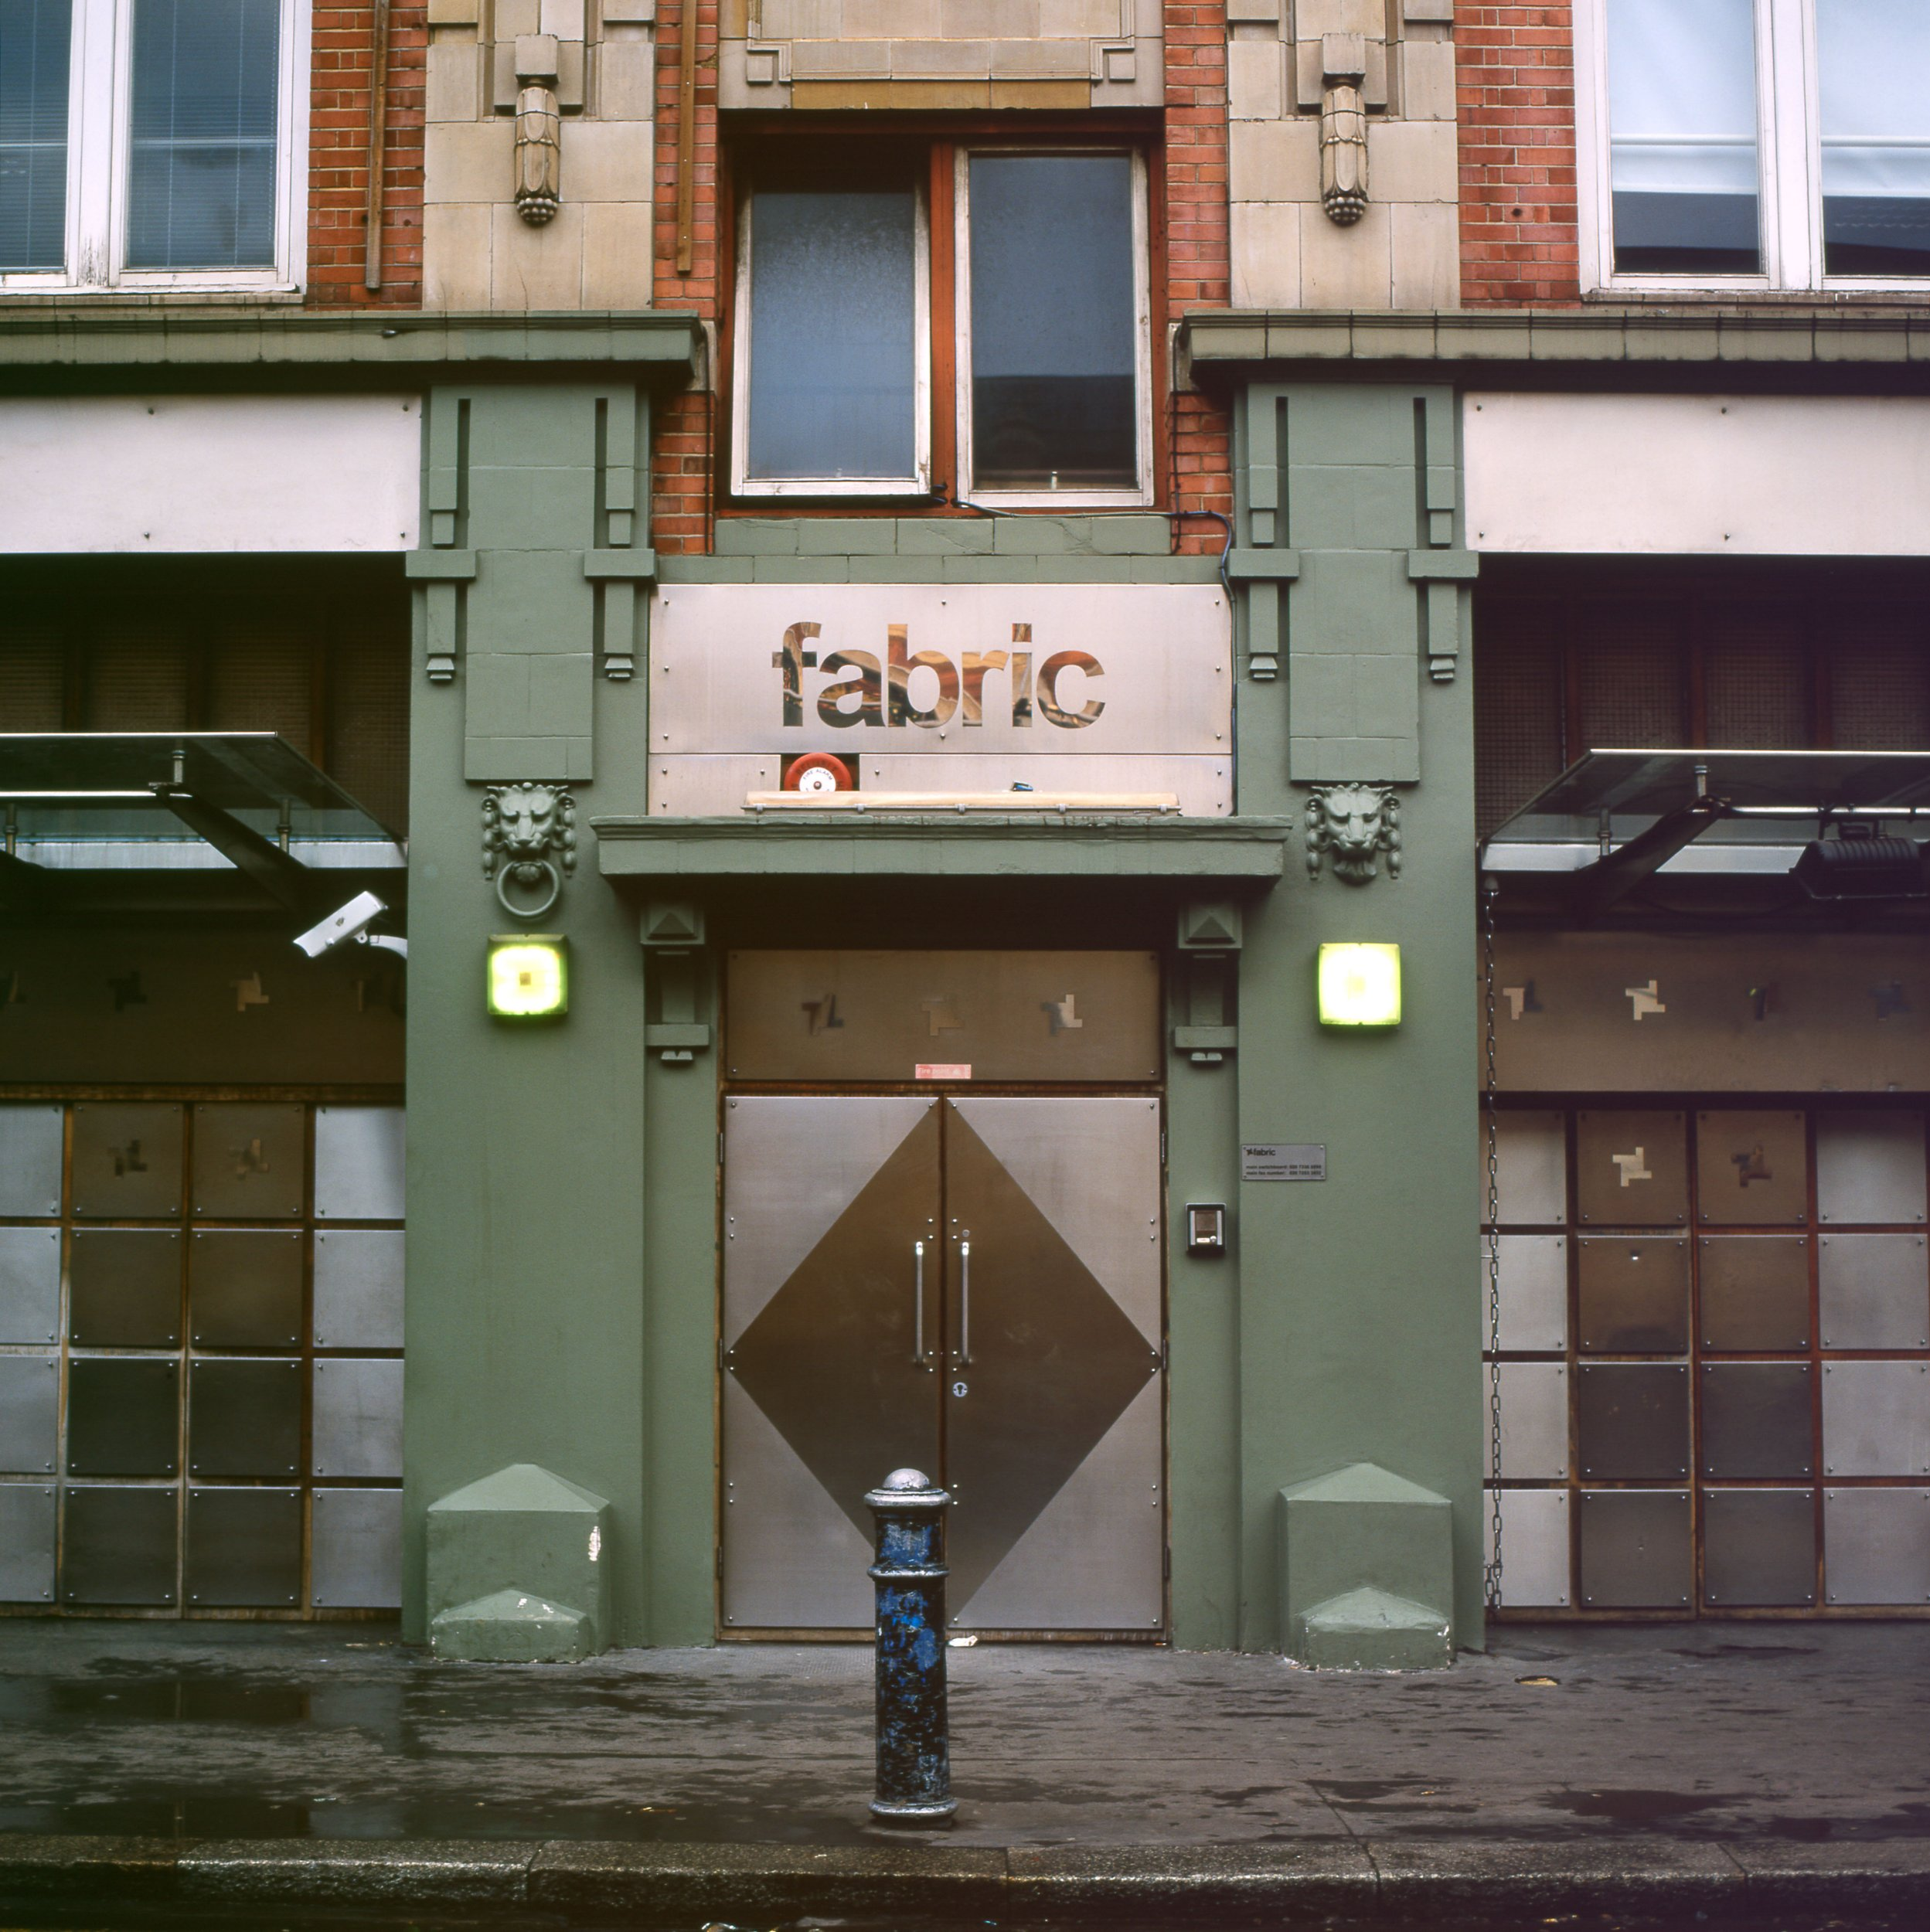 9 things Fabric might be turned into